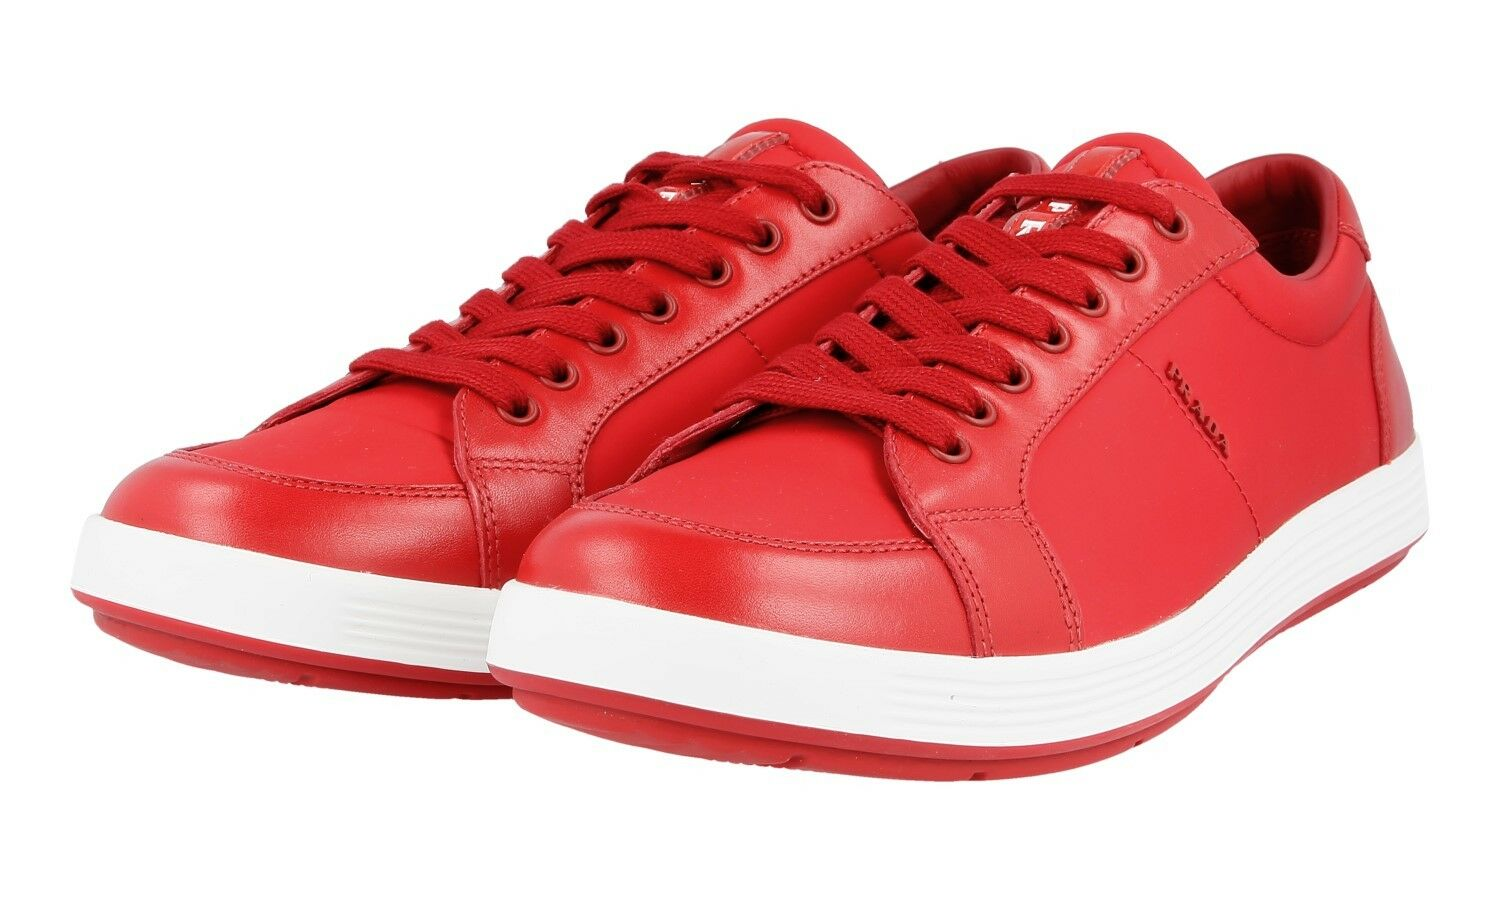 shoes PRADA LUSSO 4E2939 red NUOVE 6 40 40,5